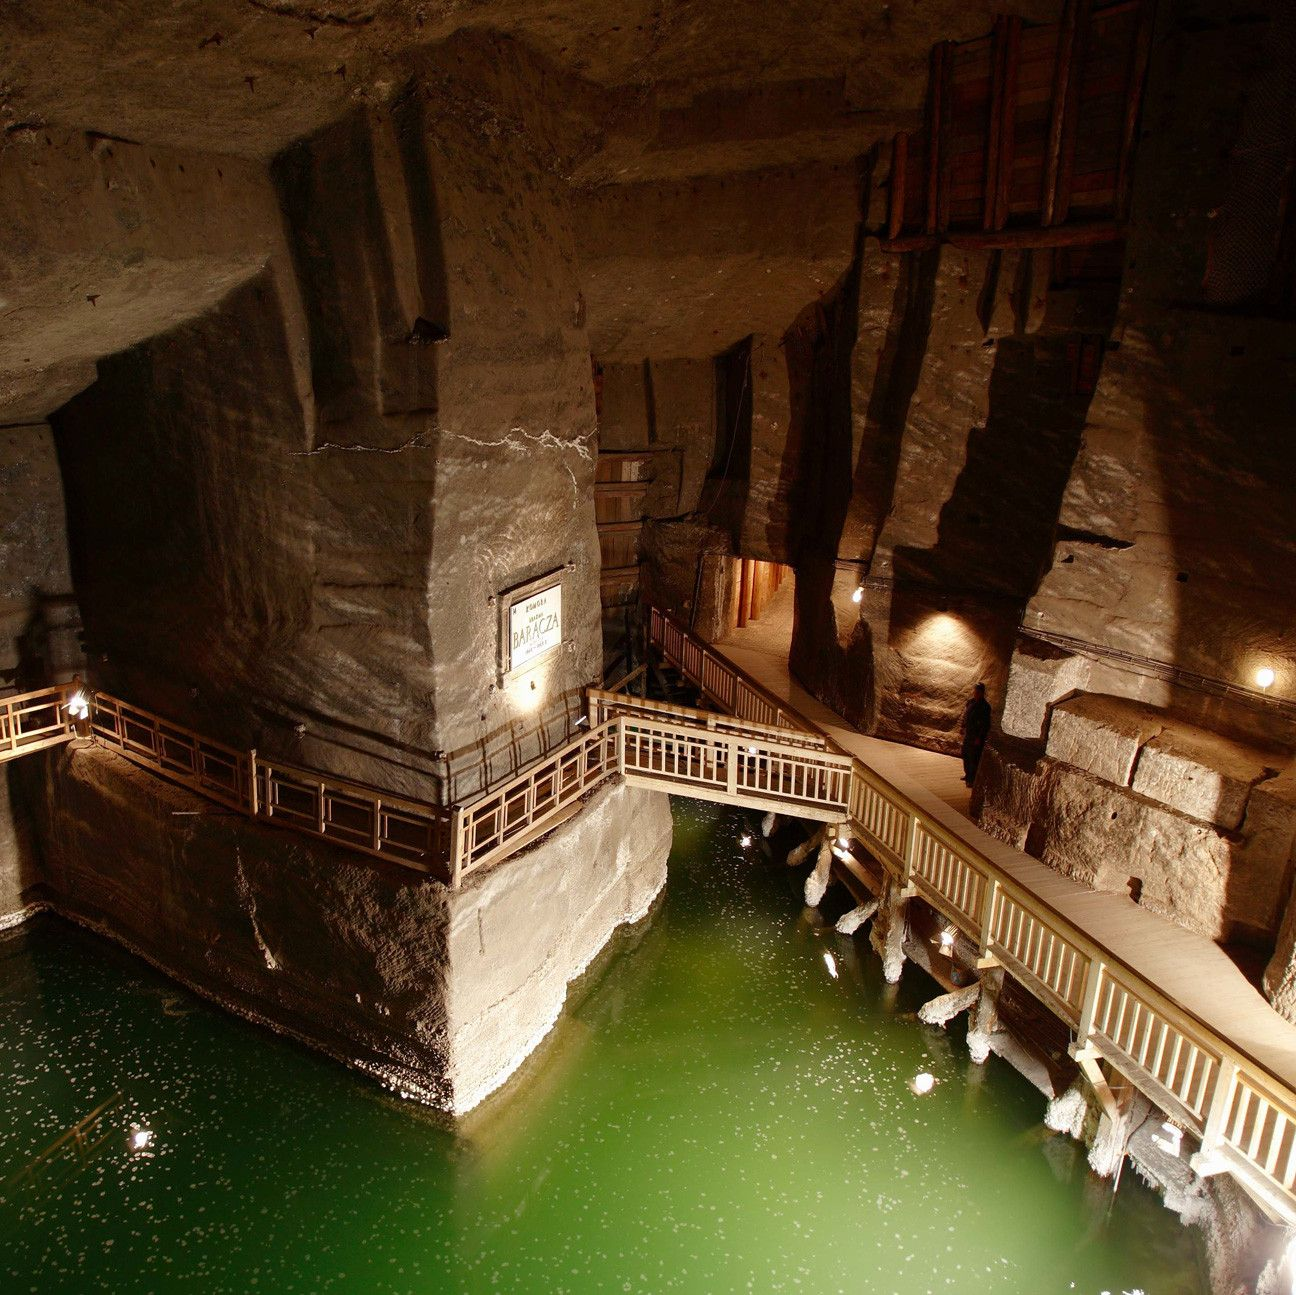 The erazm baracz chamber and underground lake in the for Chamber of mines